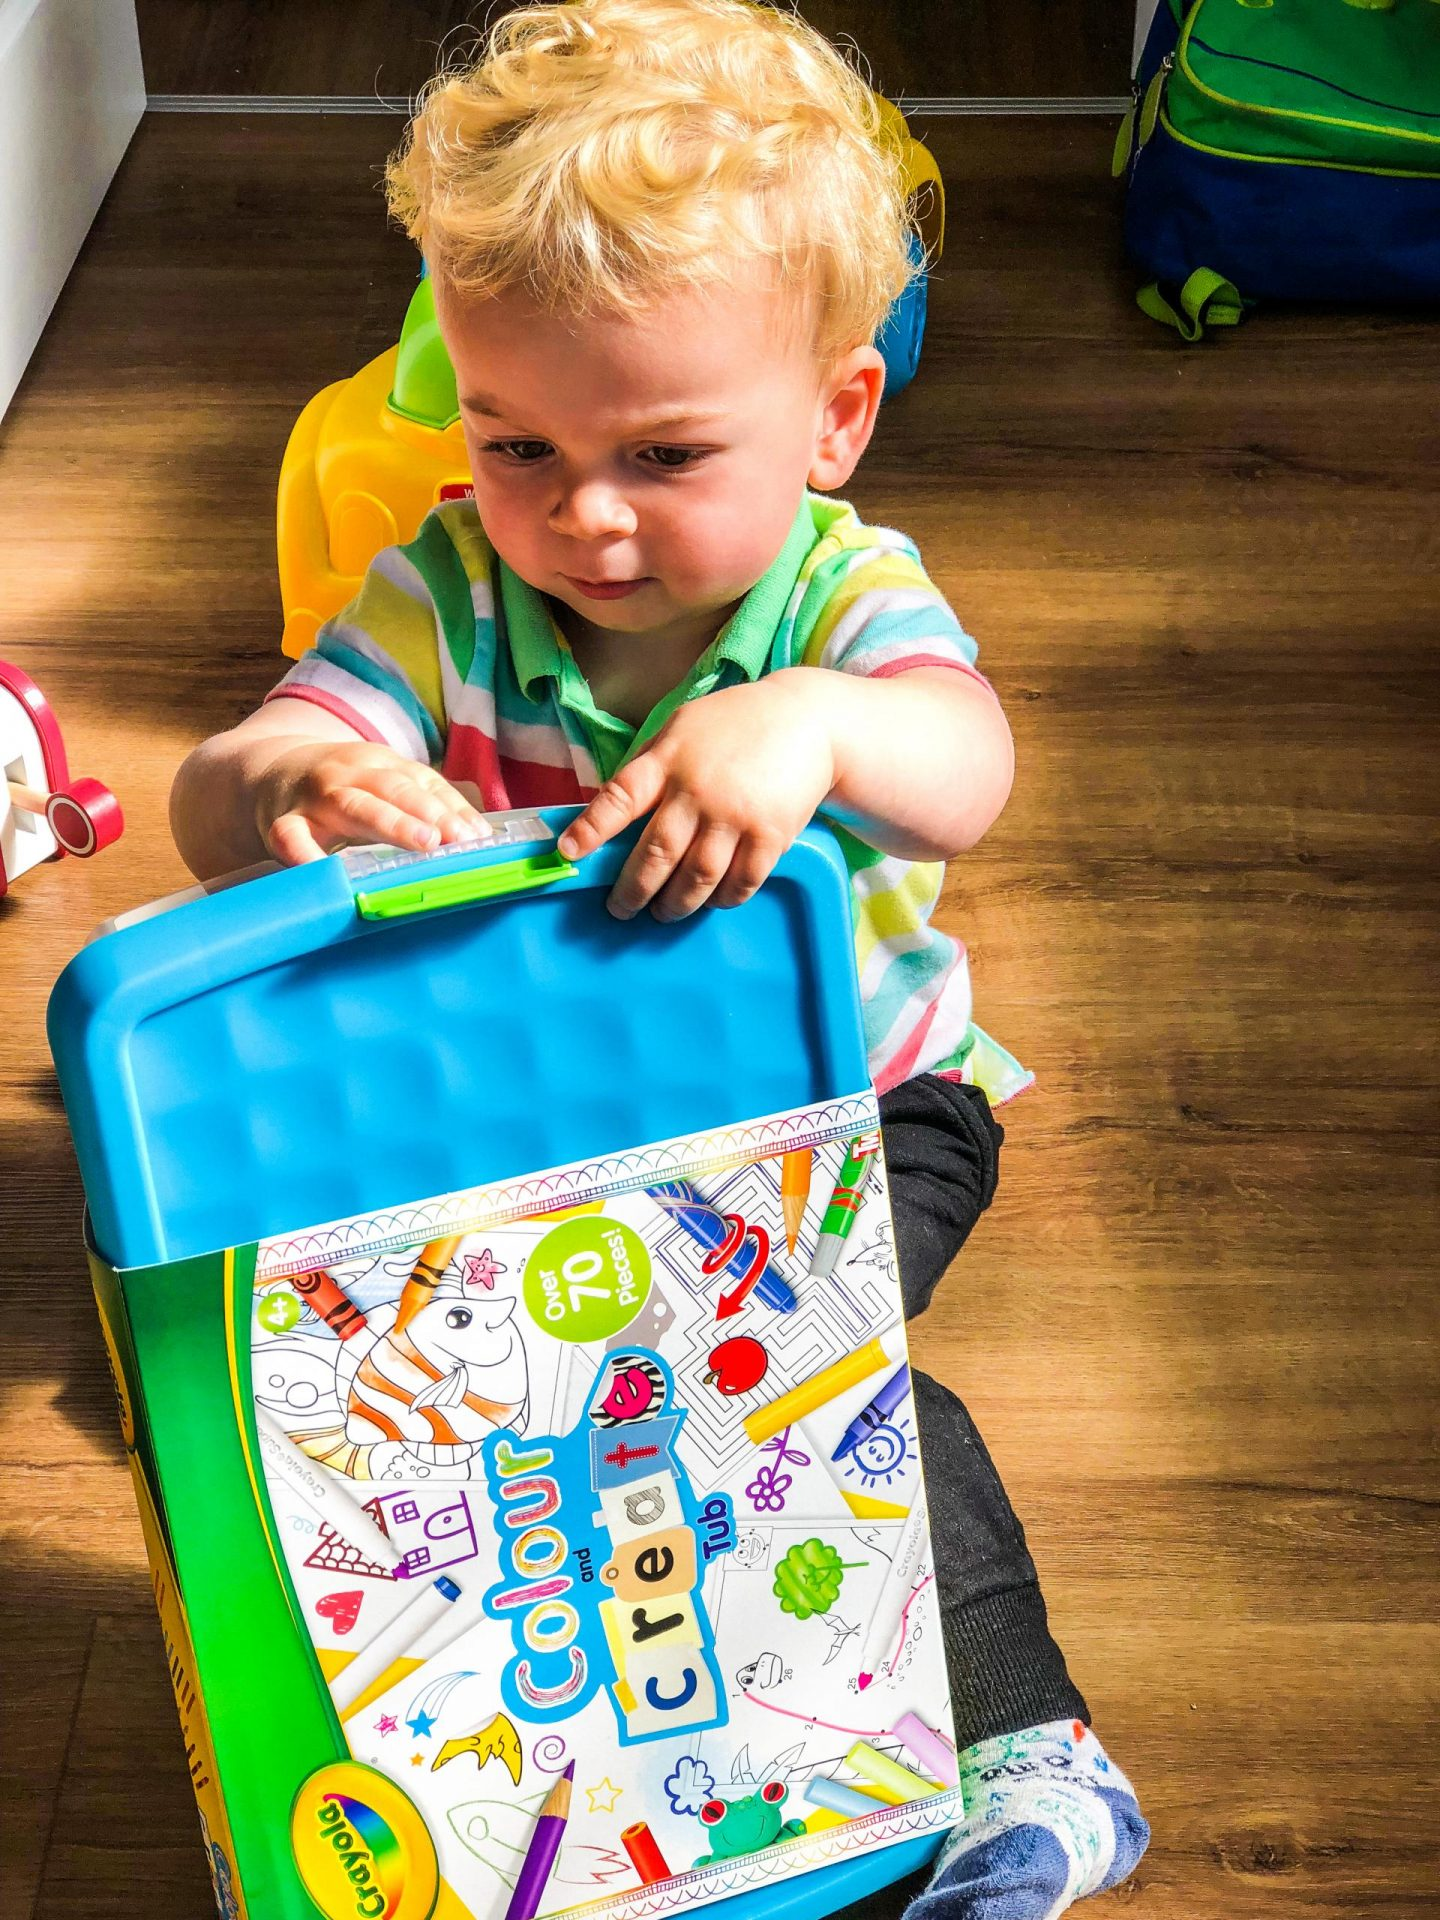 A Day In The Life of a 2 Year Old with Studio.co.uk - Rachel Nicole UK Blogger